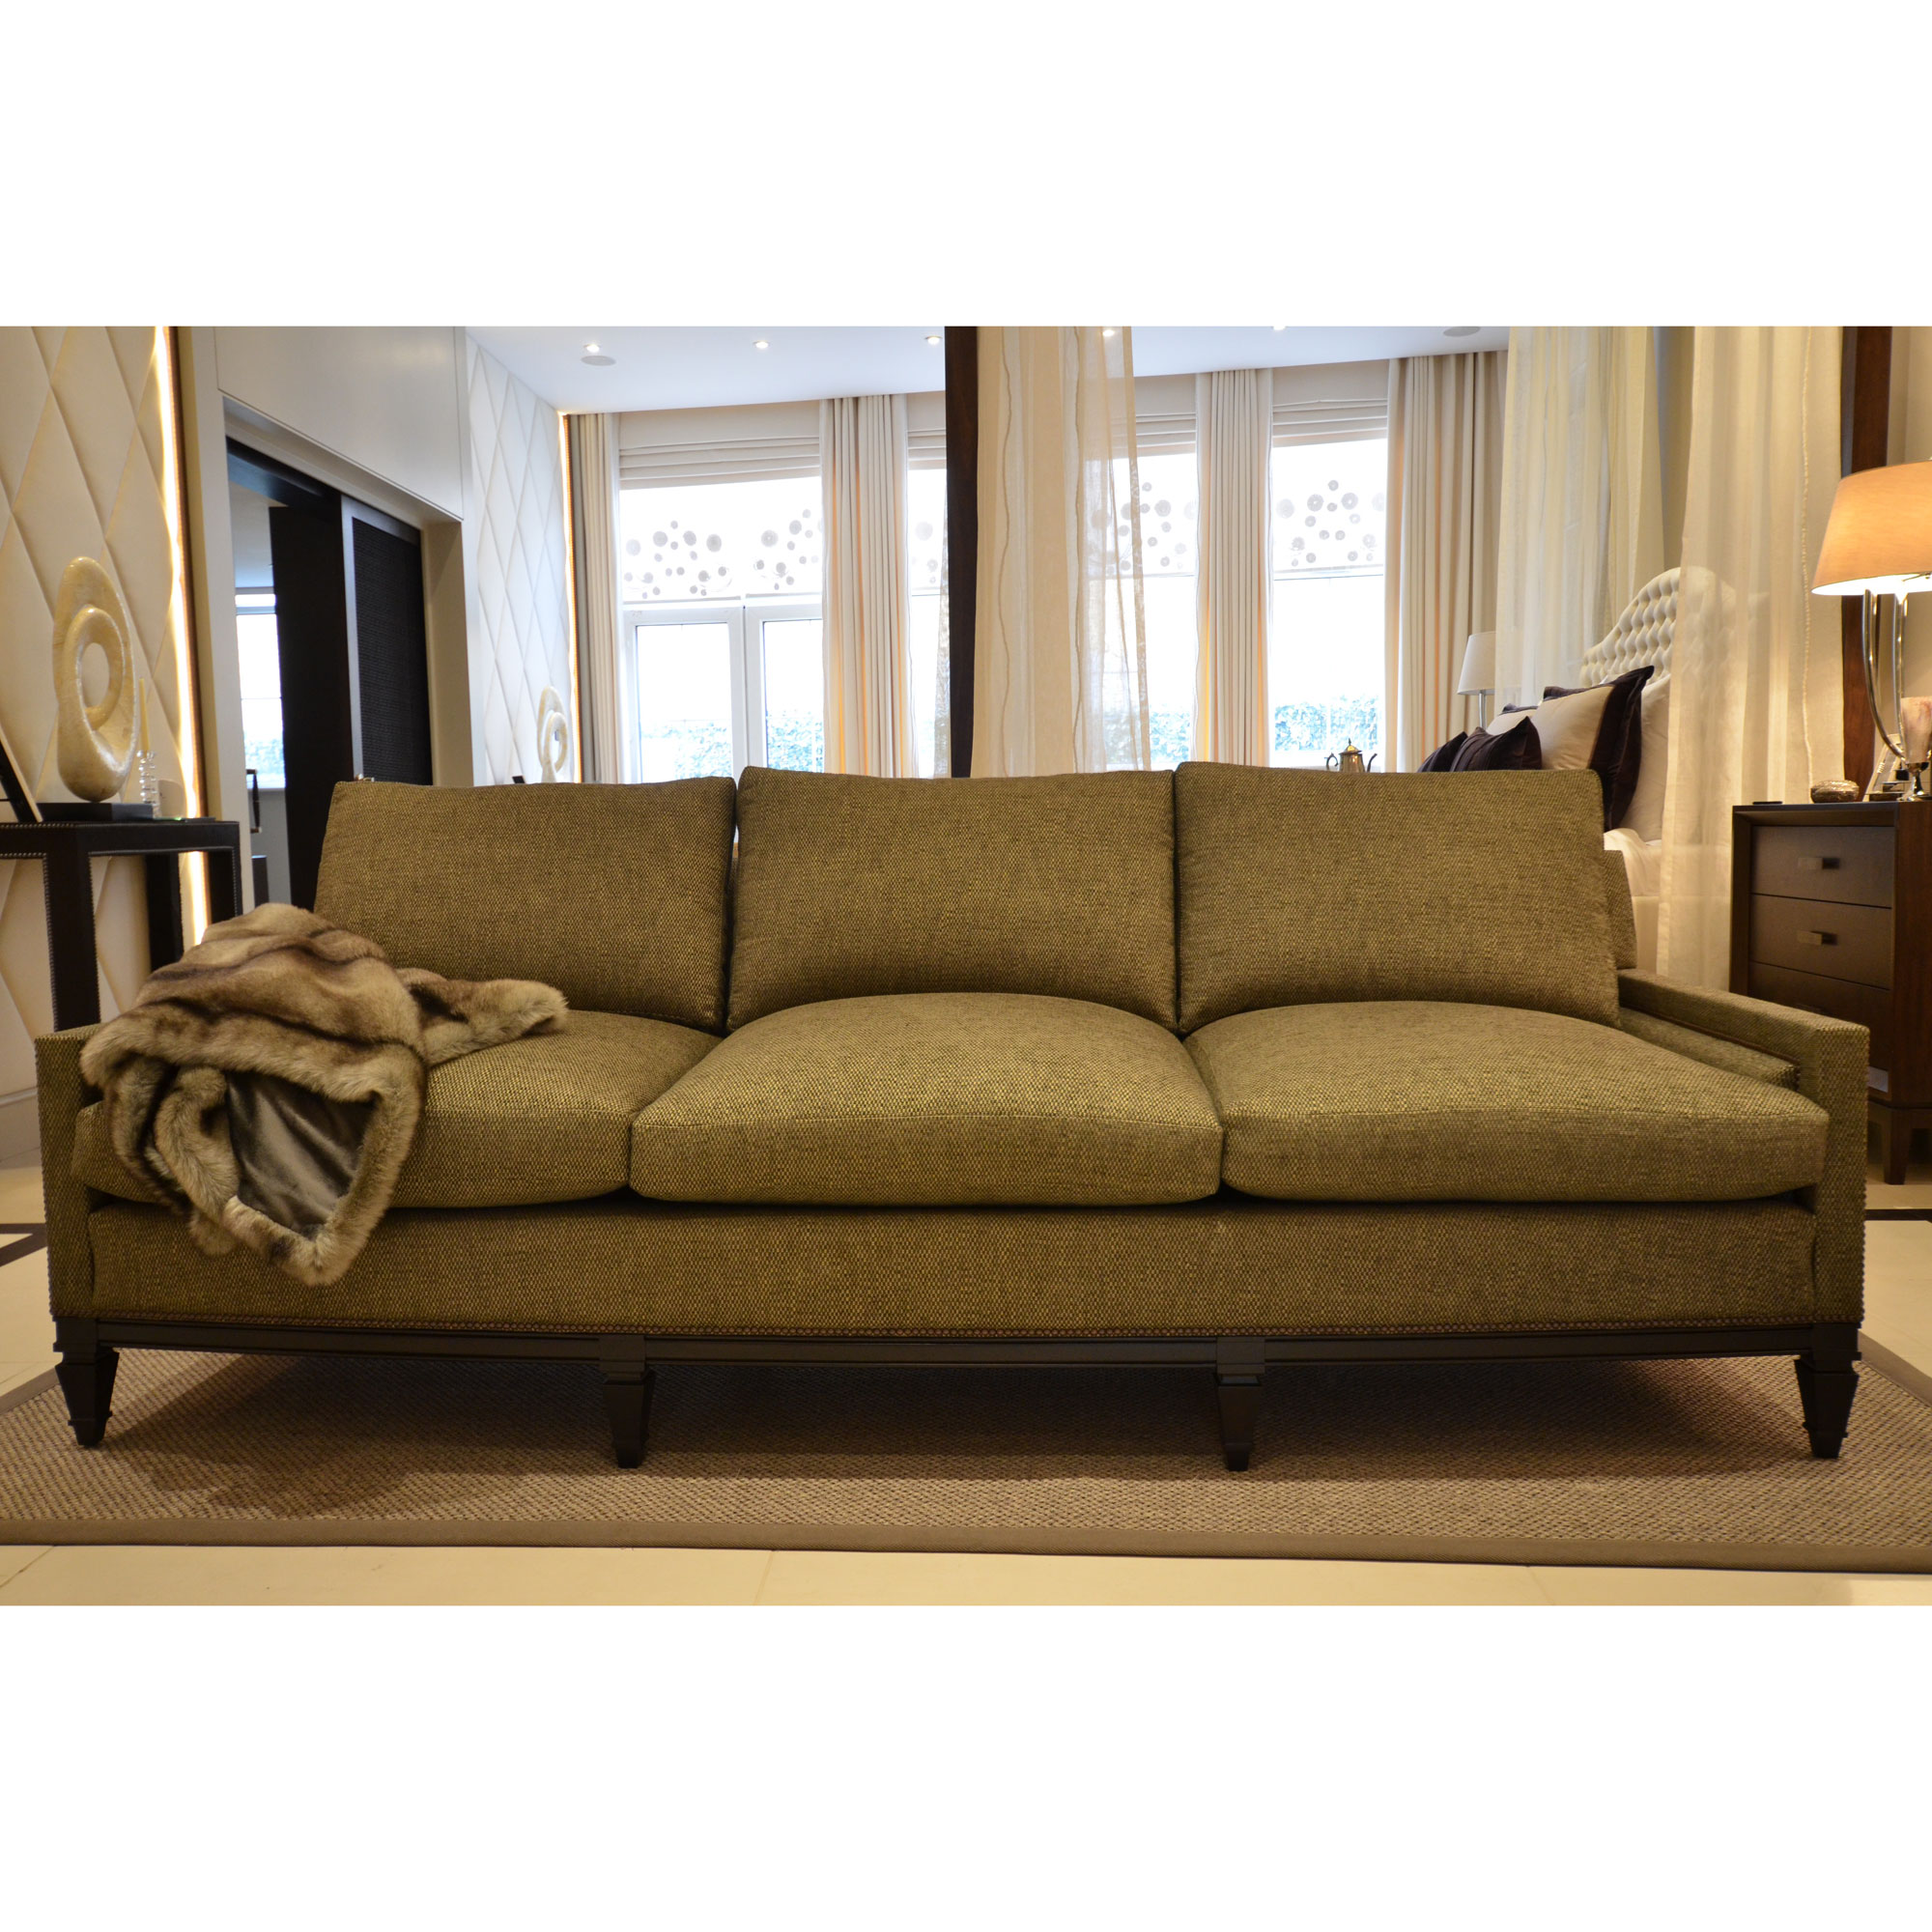 moinat sofa in living room